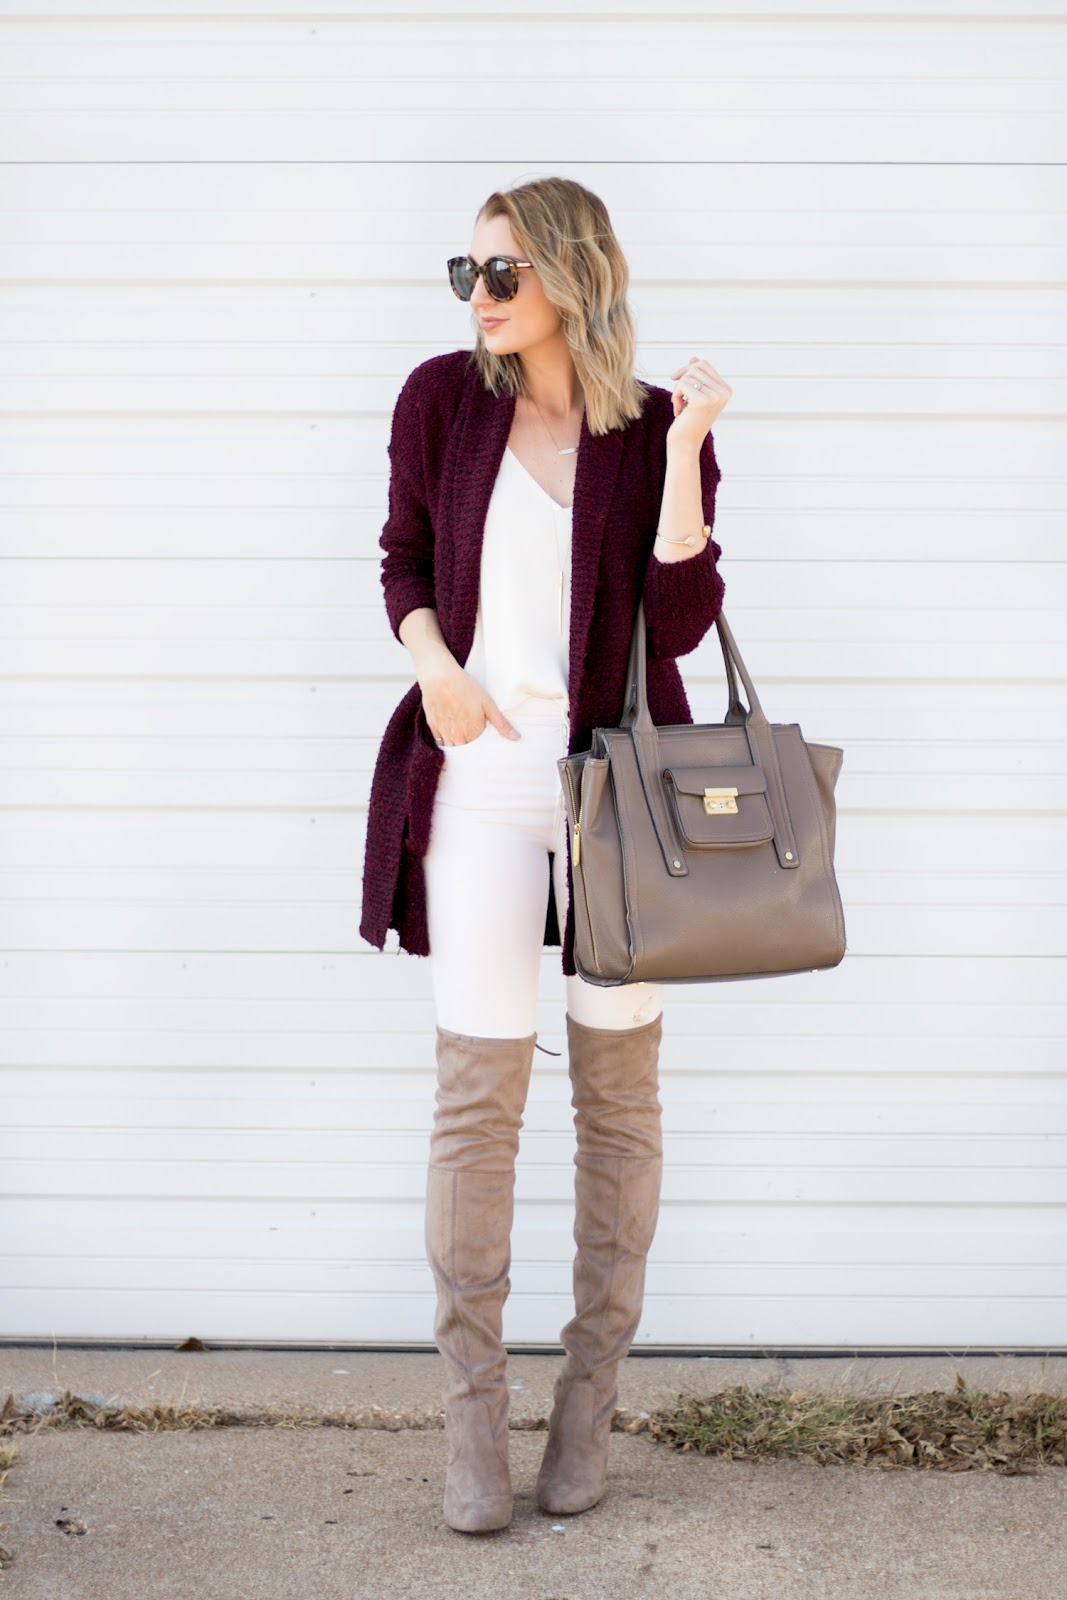 Burgundy cardigan and over the knee boots